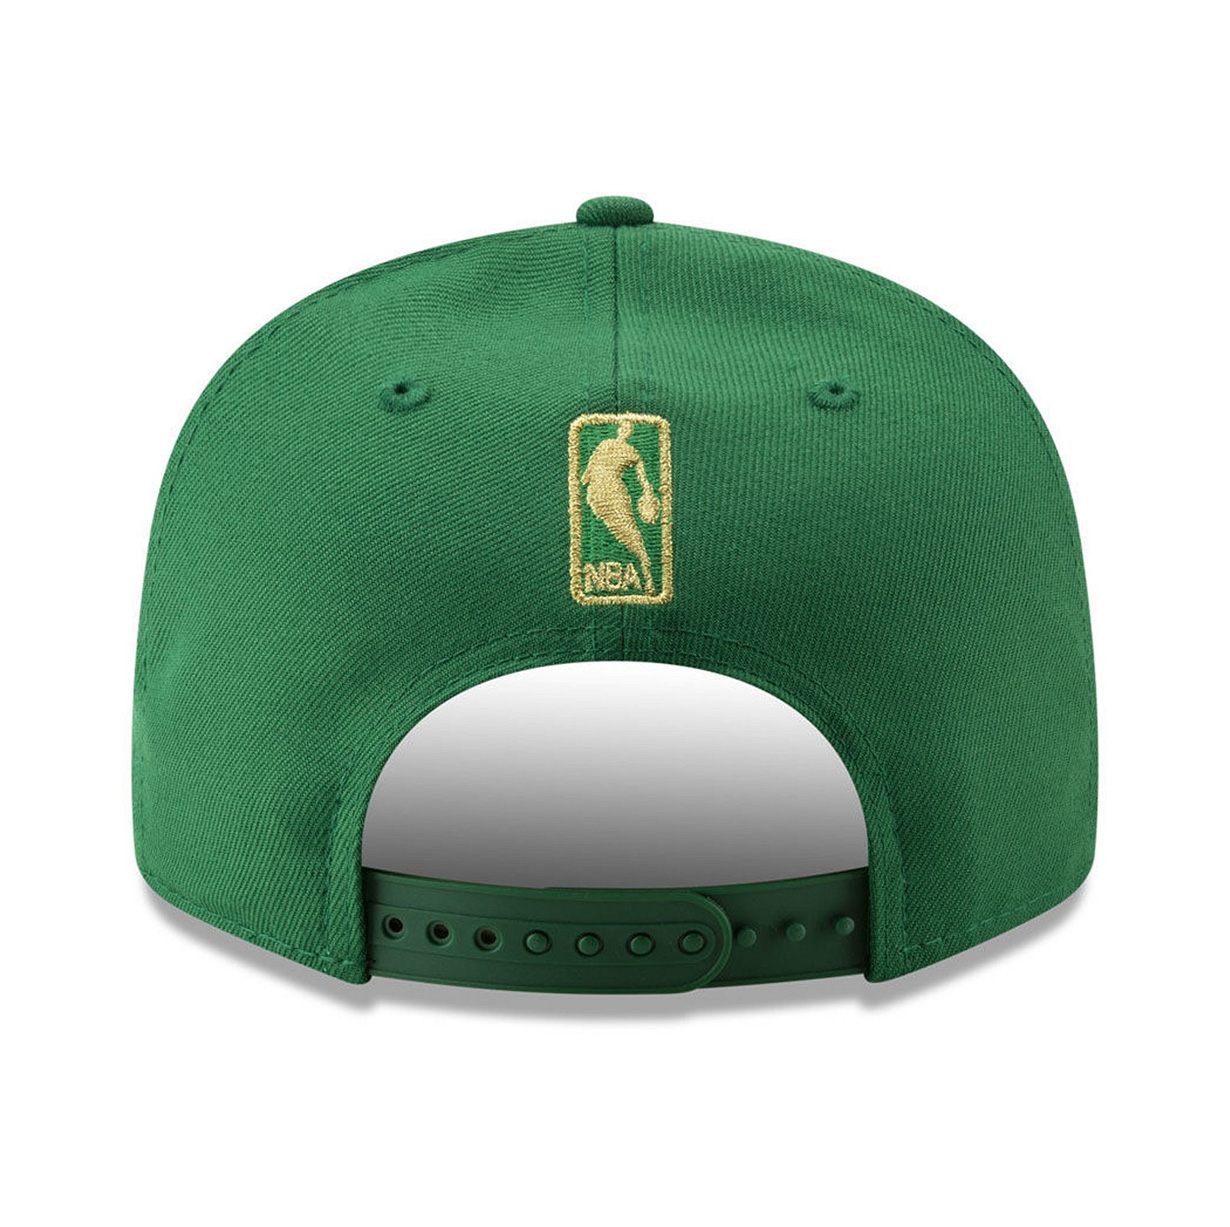 low priced 8b496 30dd6 NEW ERA 9FIFTY Boston Celtics Snapback Hat Cap NBA Adjustable   eBay